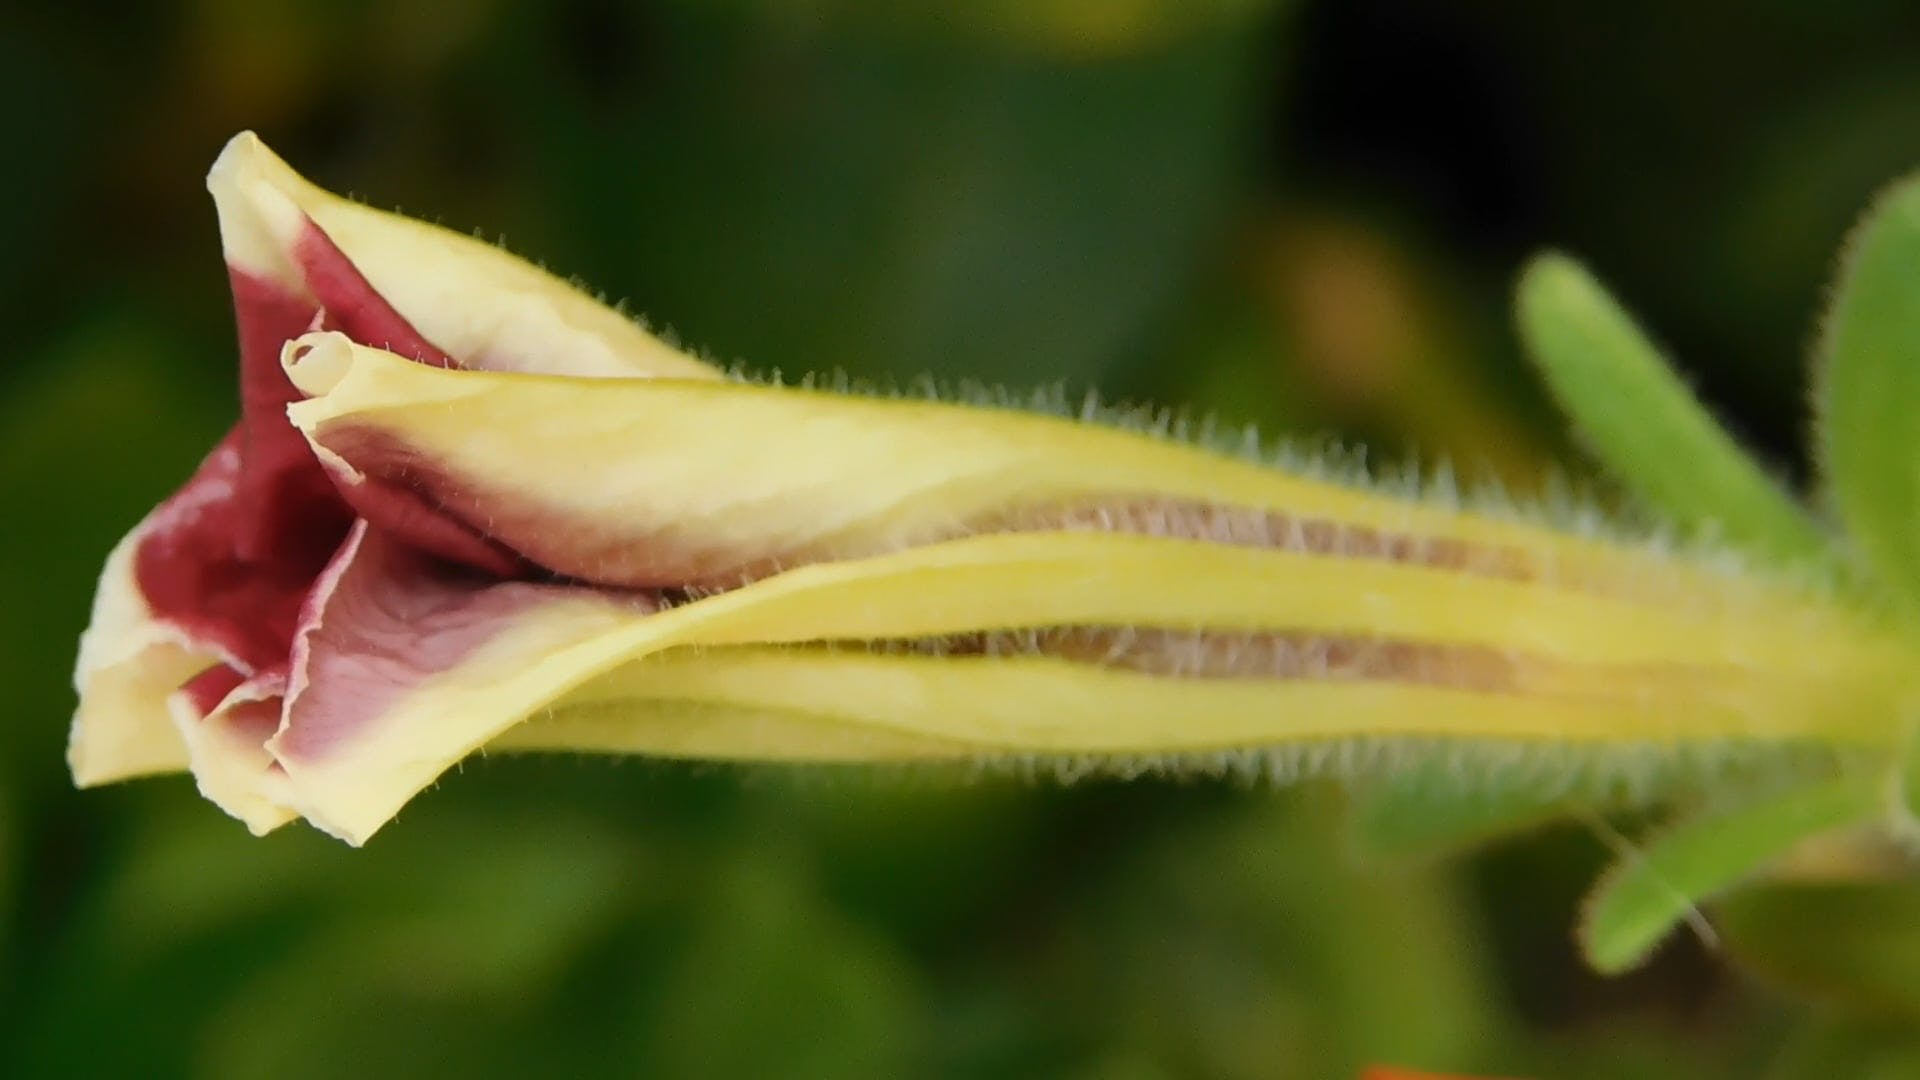 Close-up of a Flower Bud